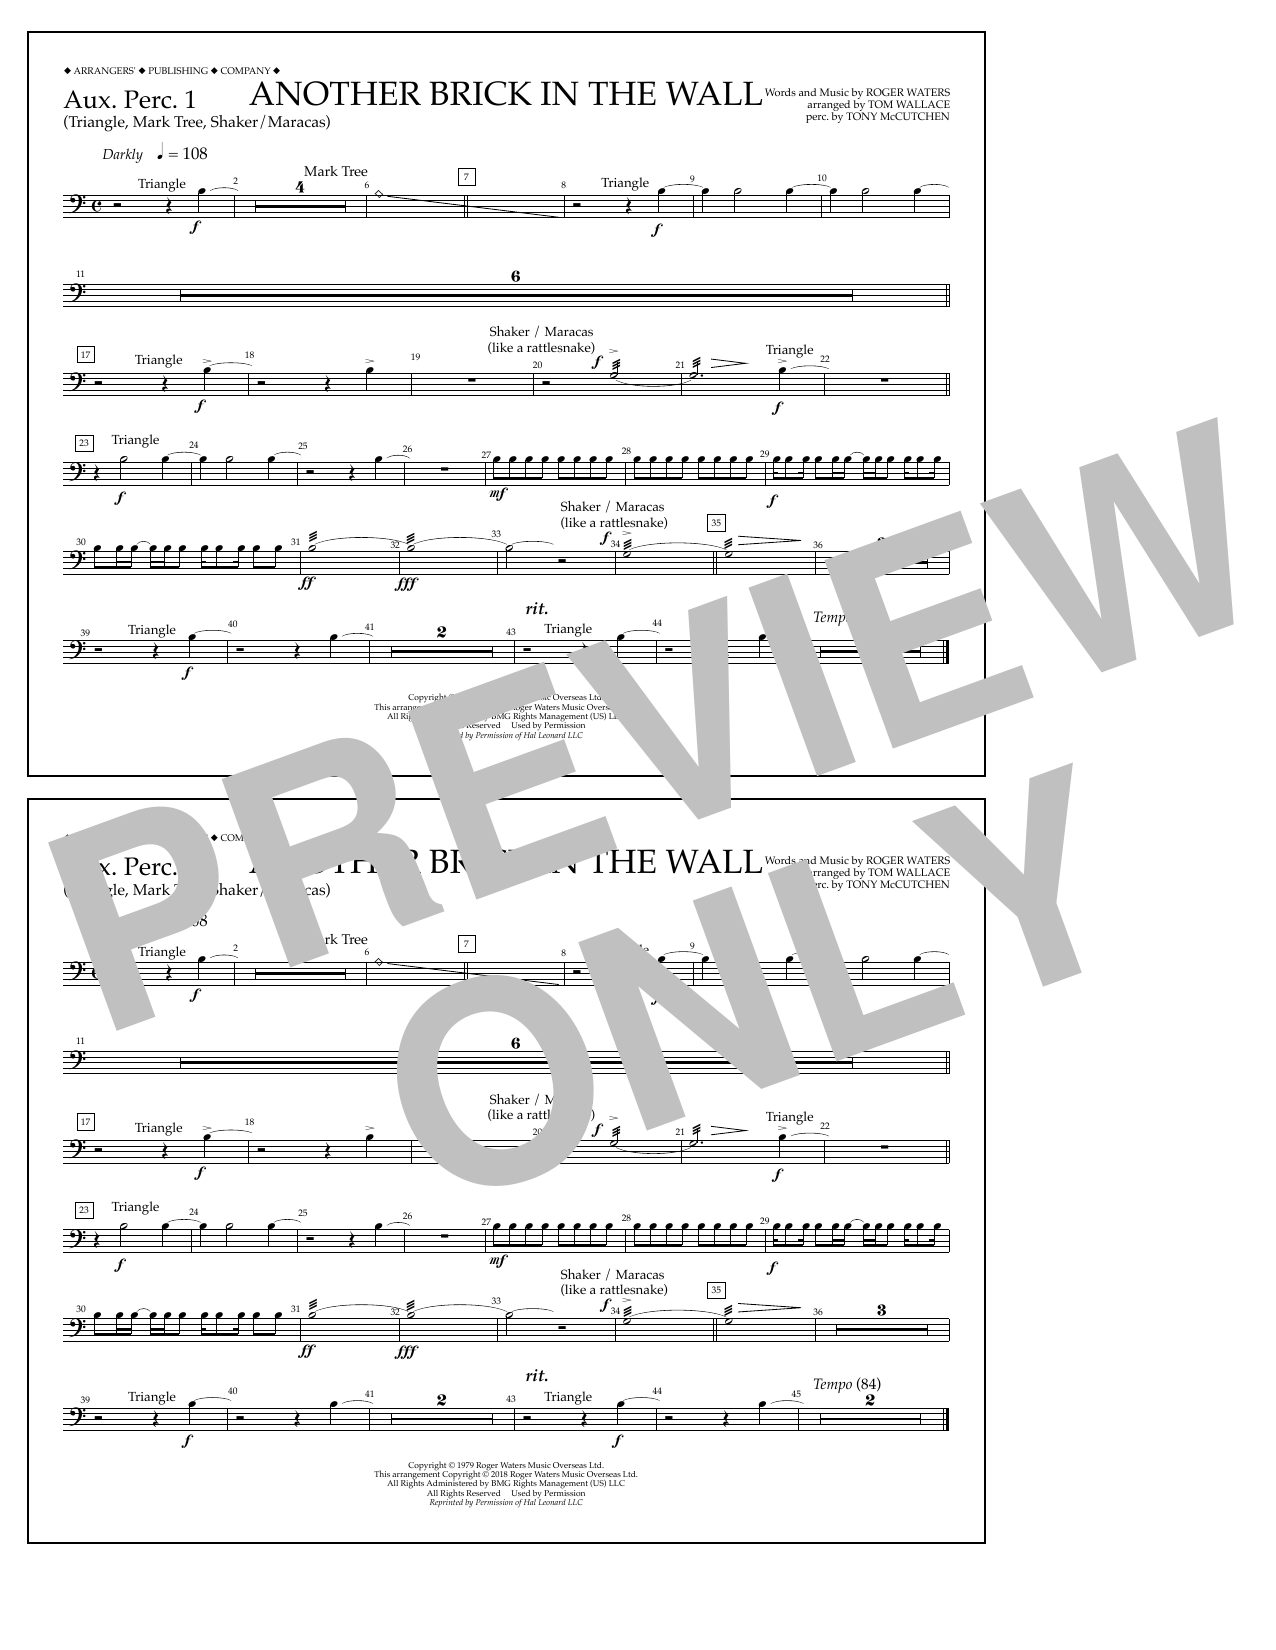 Tom Wallace Another Brick in the Wall - Aux. Perc. 1 sheet music notes and chords